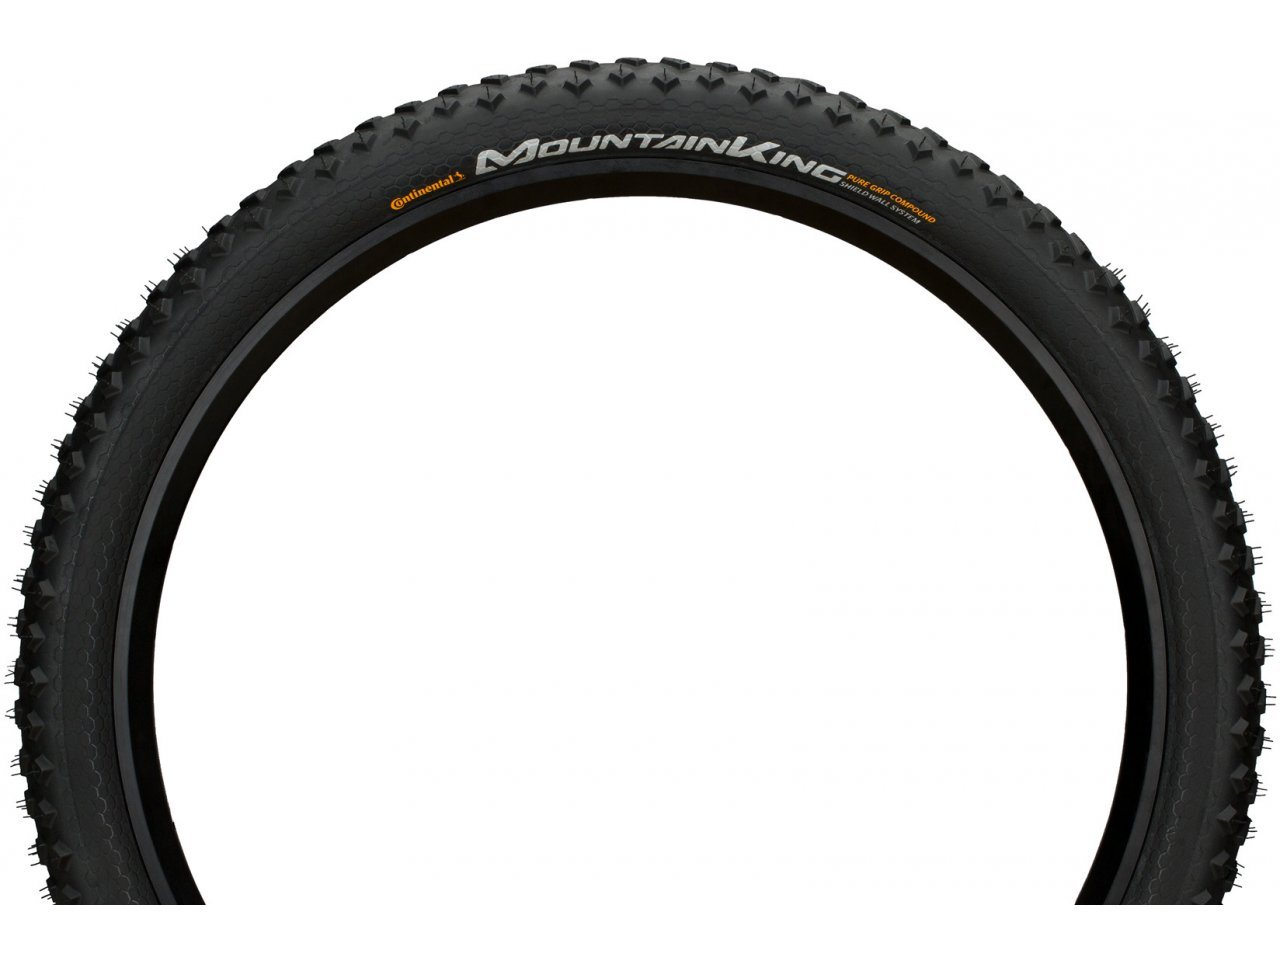 Mountain King 3 Performance Pure Grip Folding 26x2.30 Continental Black